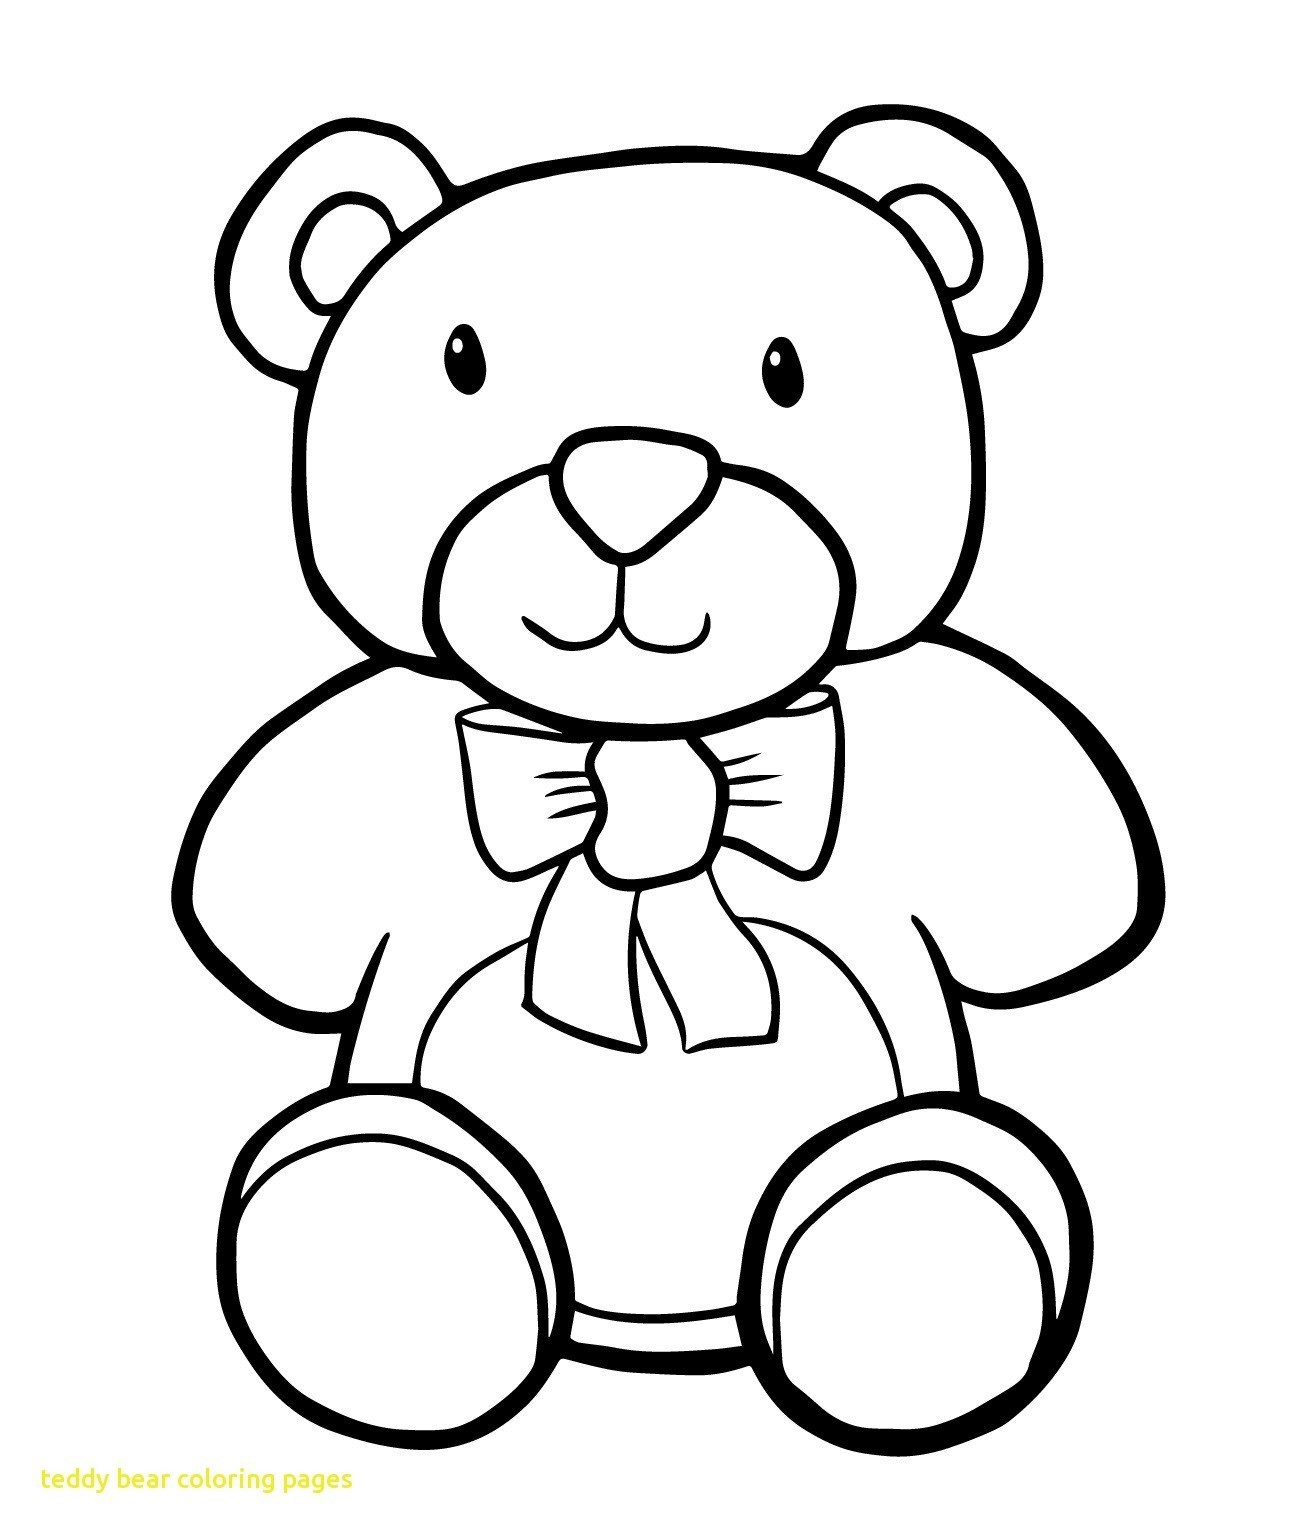 Cute Baby Bear Drawing | Free download on ClipArtMag